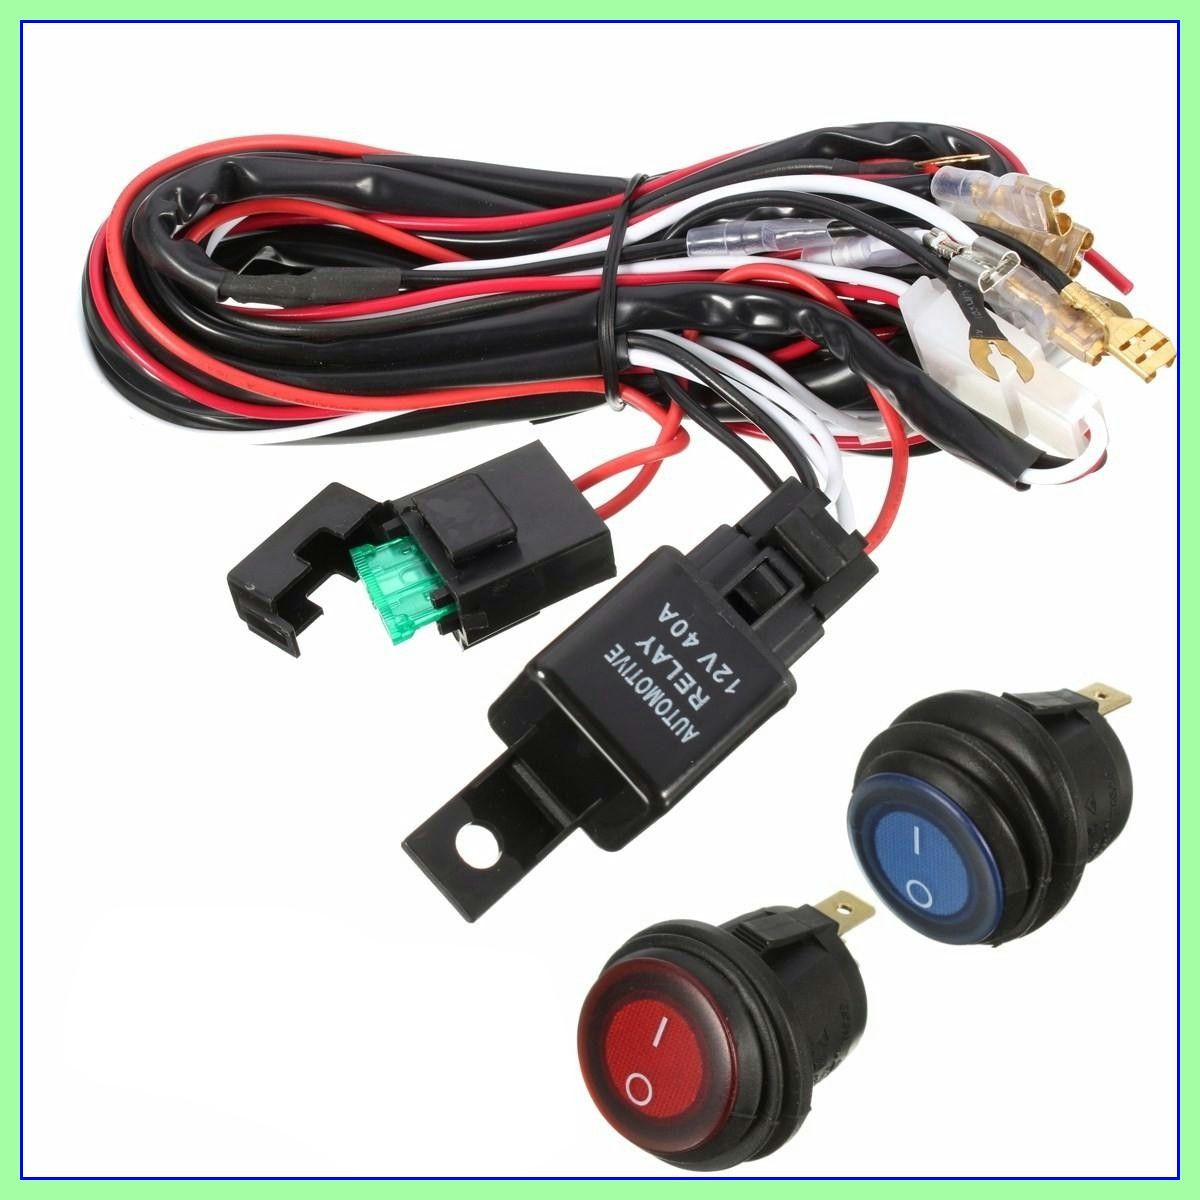 147 Reference Of Led Light Bar Wiring Harness In 2020 12v Led Lights Led Light Bars Bar Lighting